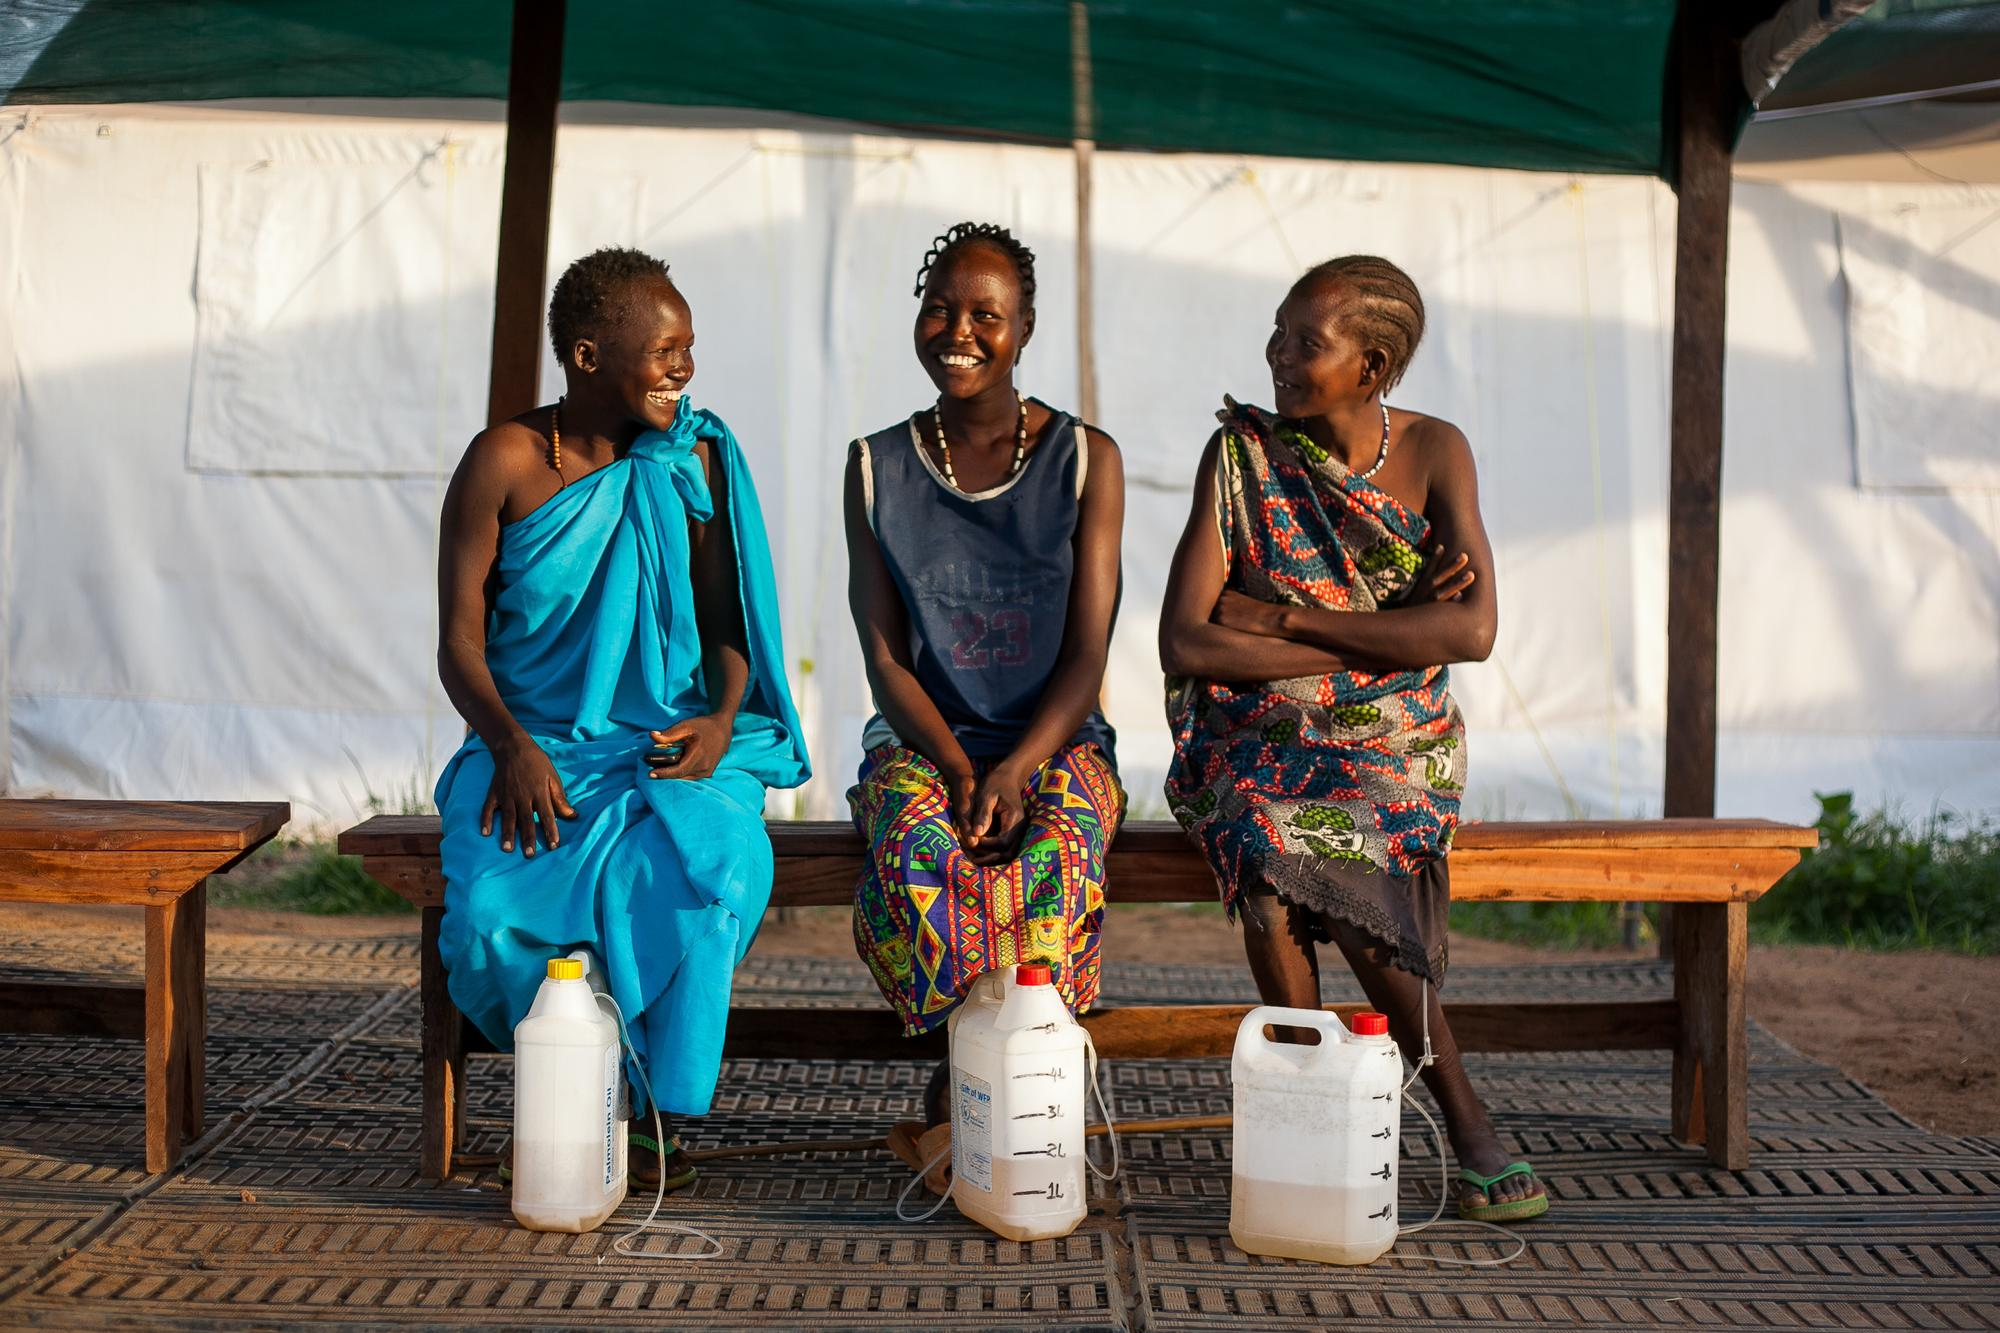 Women waiting for treatment at an MSF fistula 'camp'